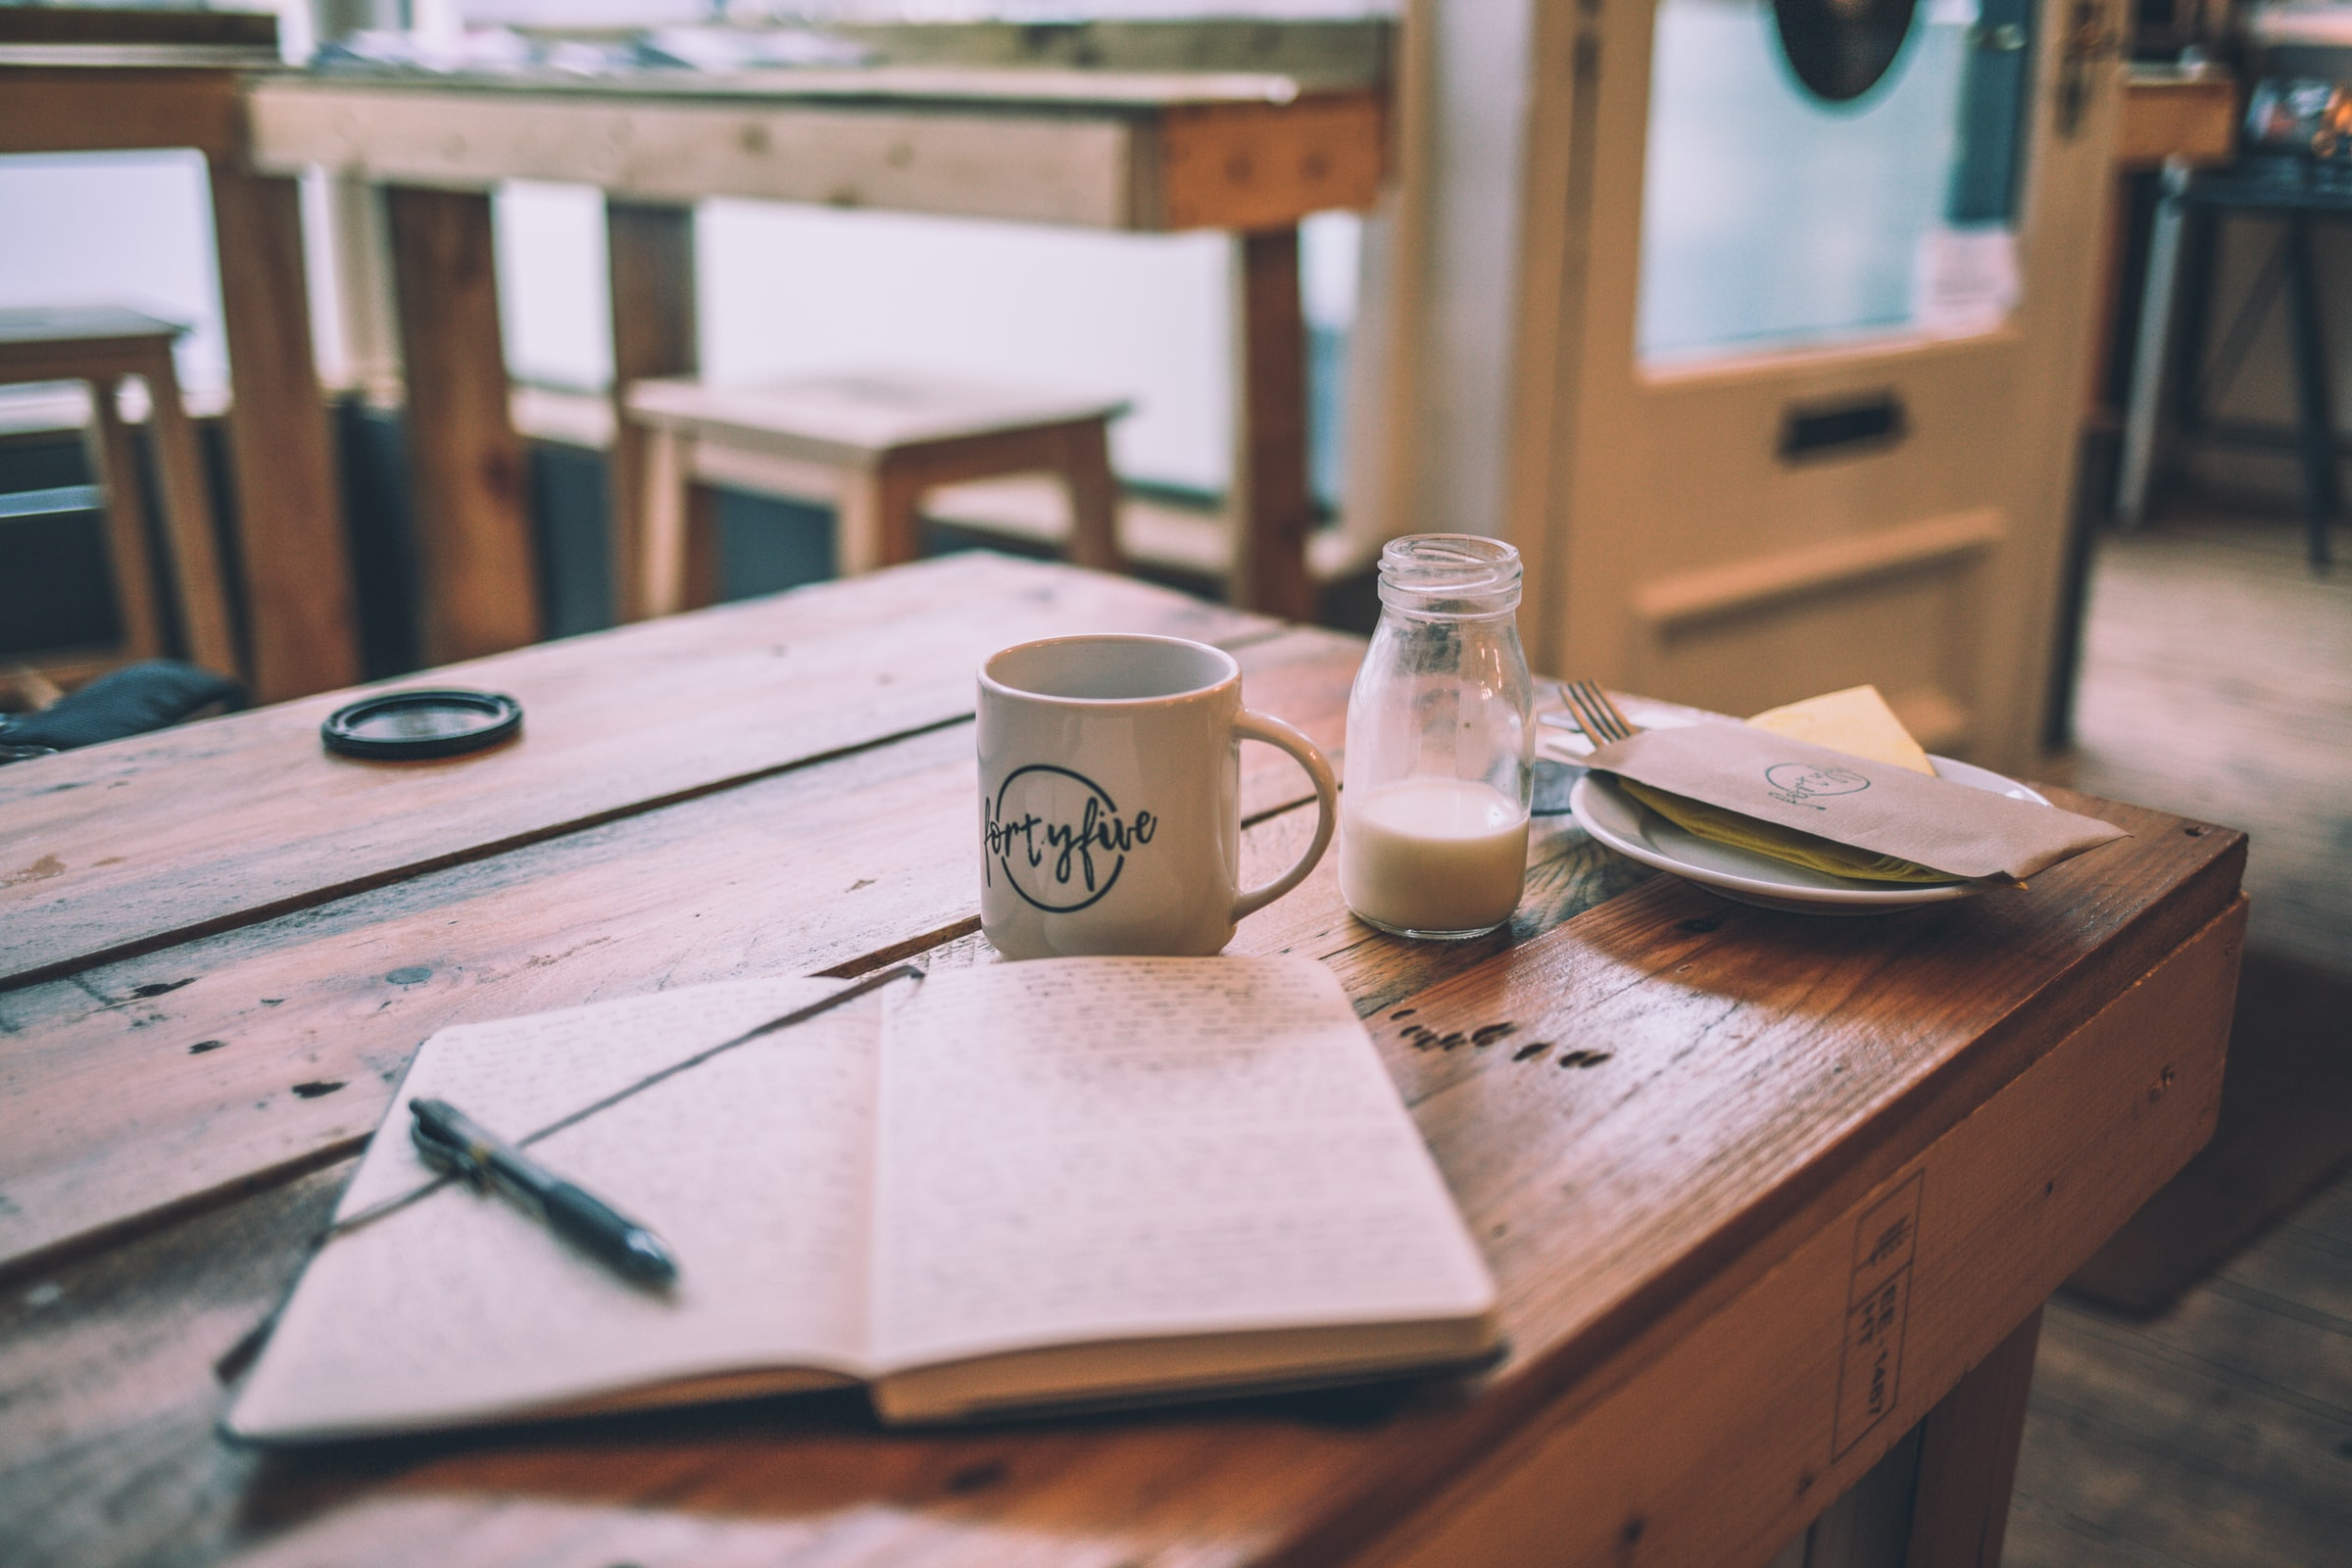 White diary behind a milk bottle and coffee mug